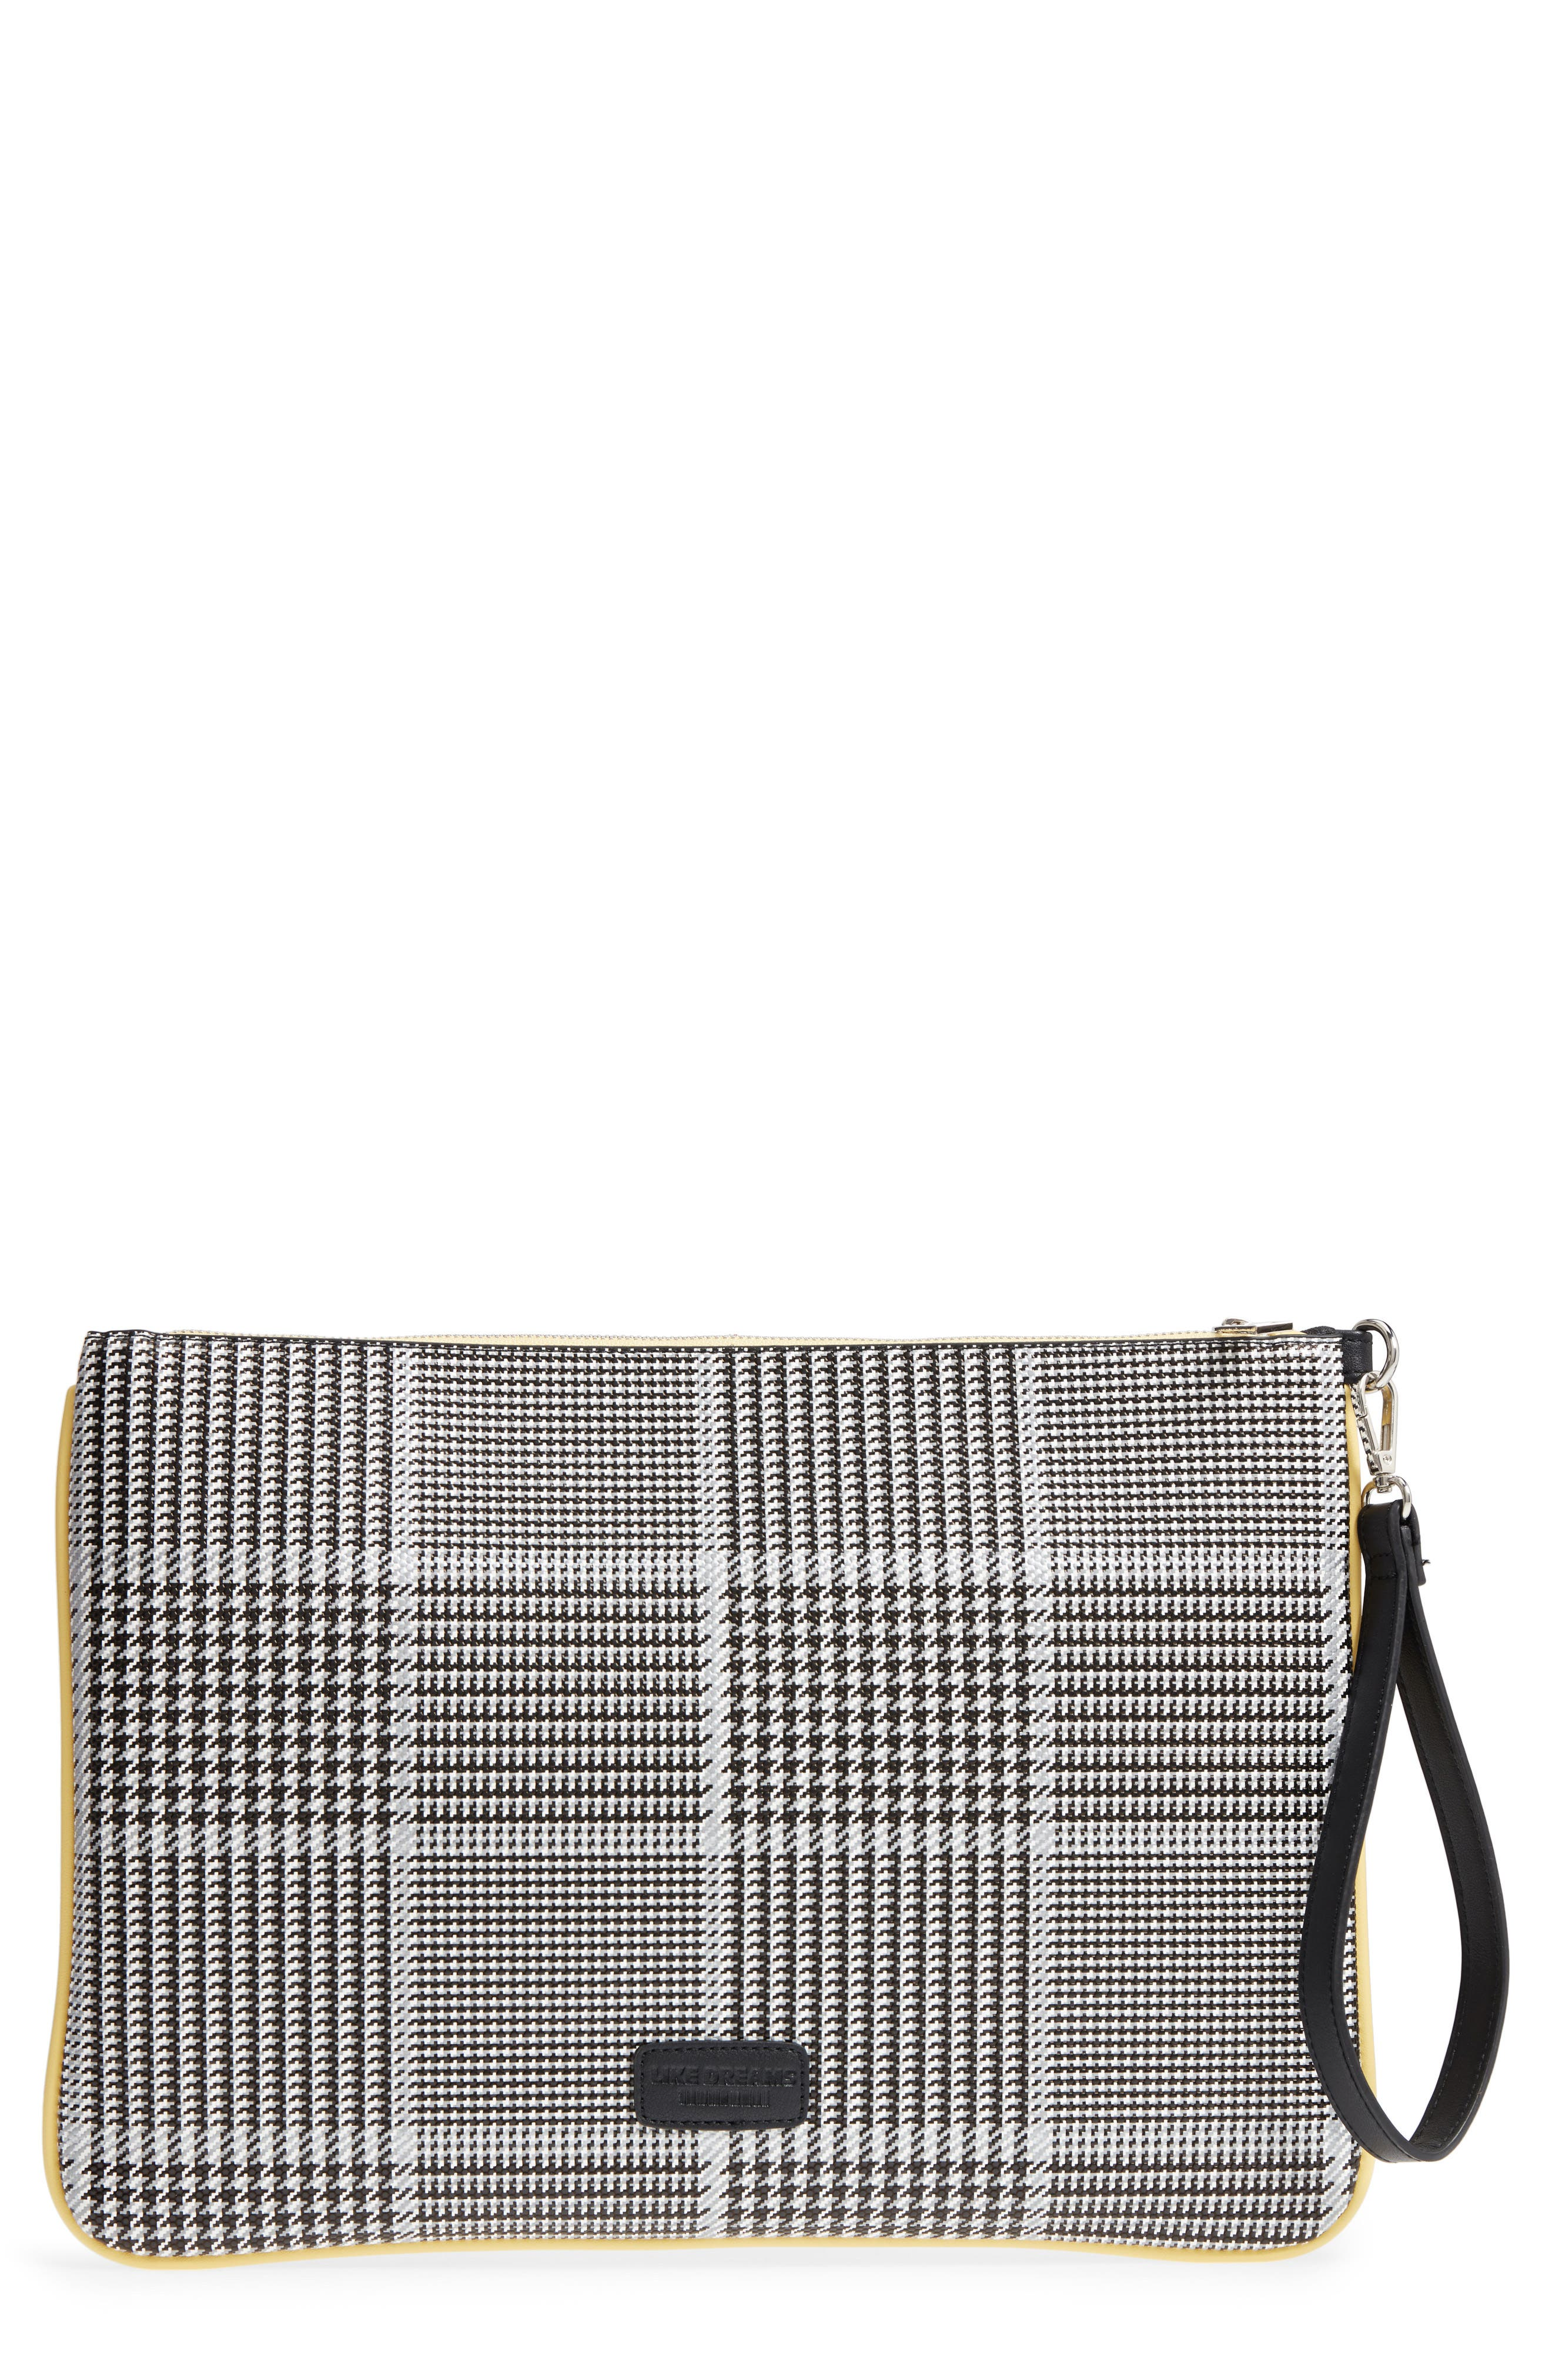 Prince of Wales Check Clutch,                         Main,                         color, Black Multi